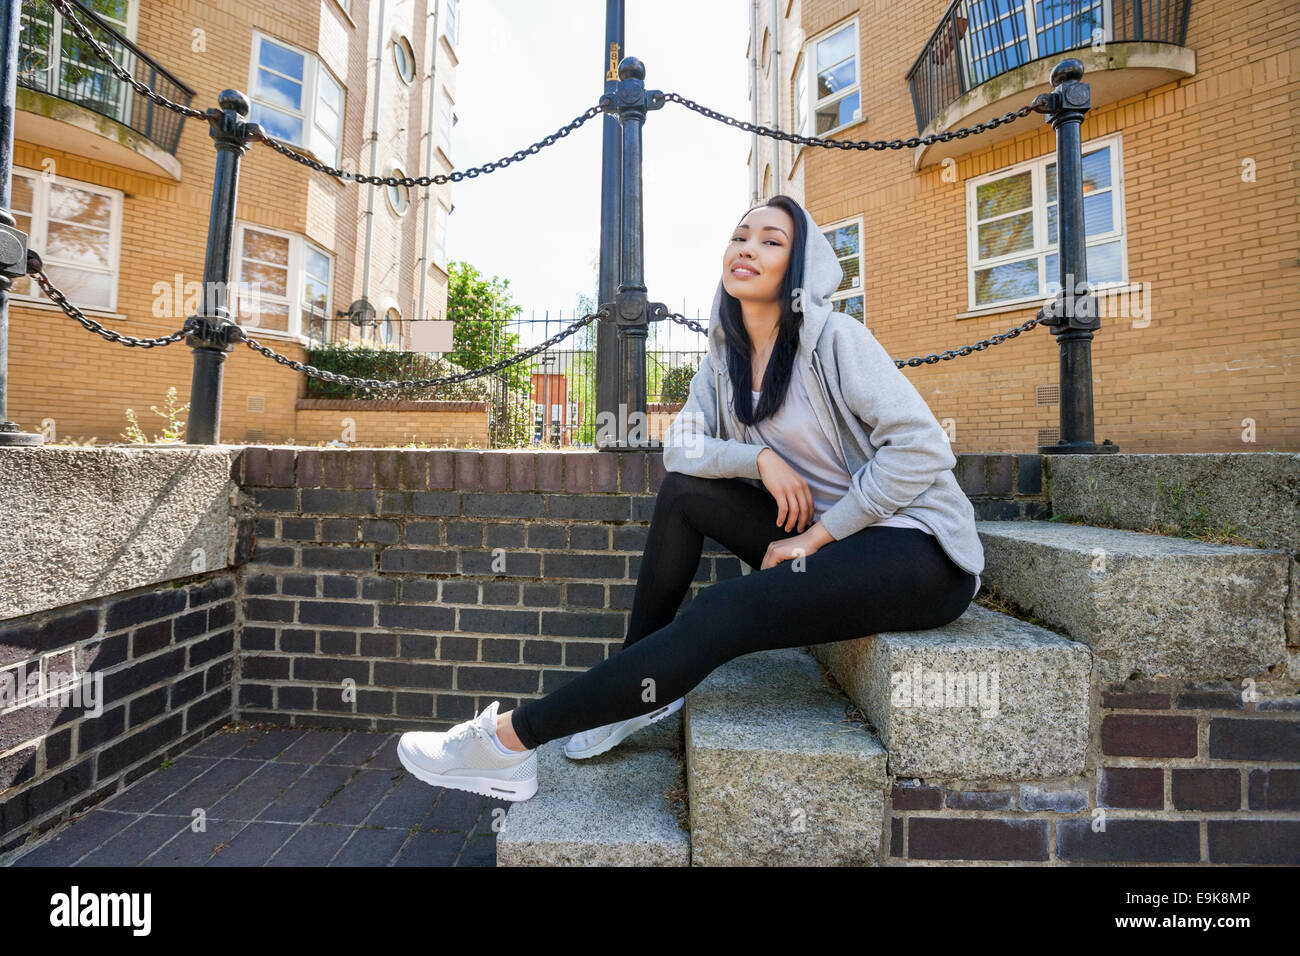 Full length portrait of young woman sitting on stairs against building - Stock Image